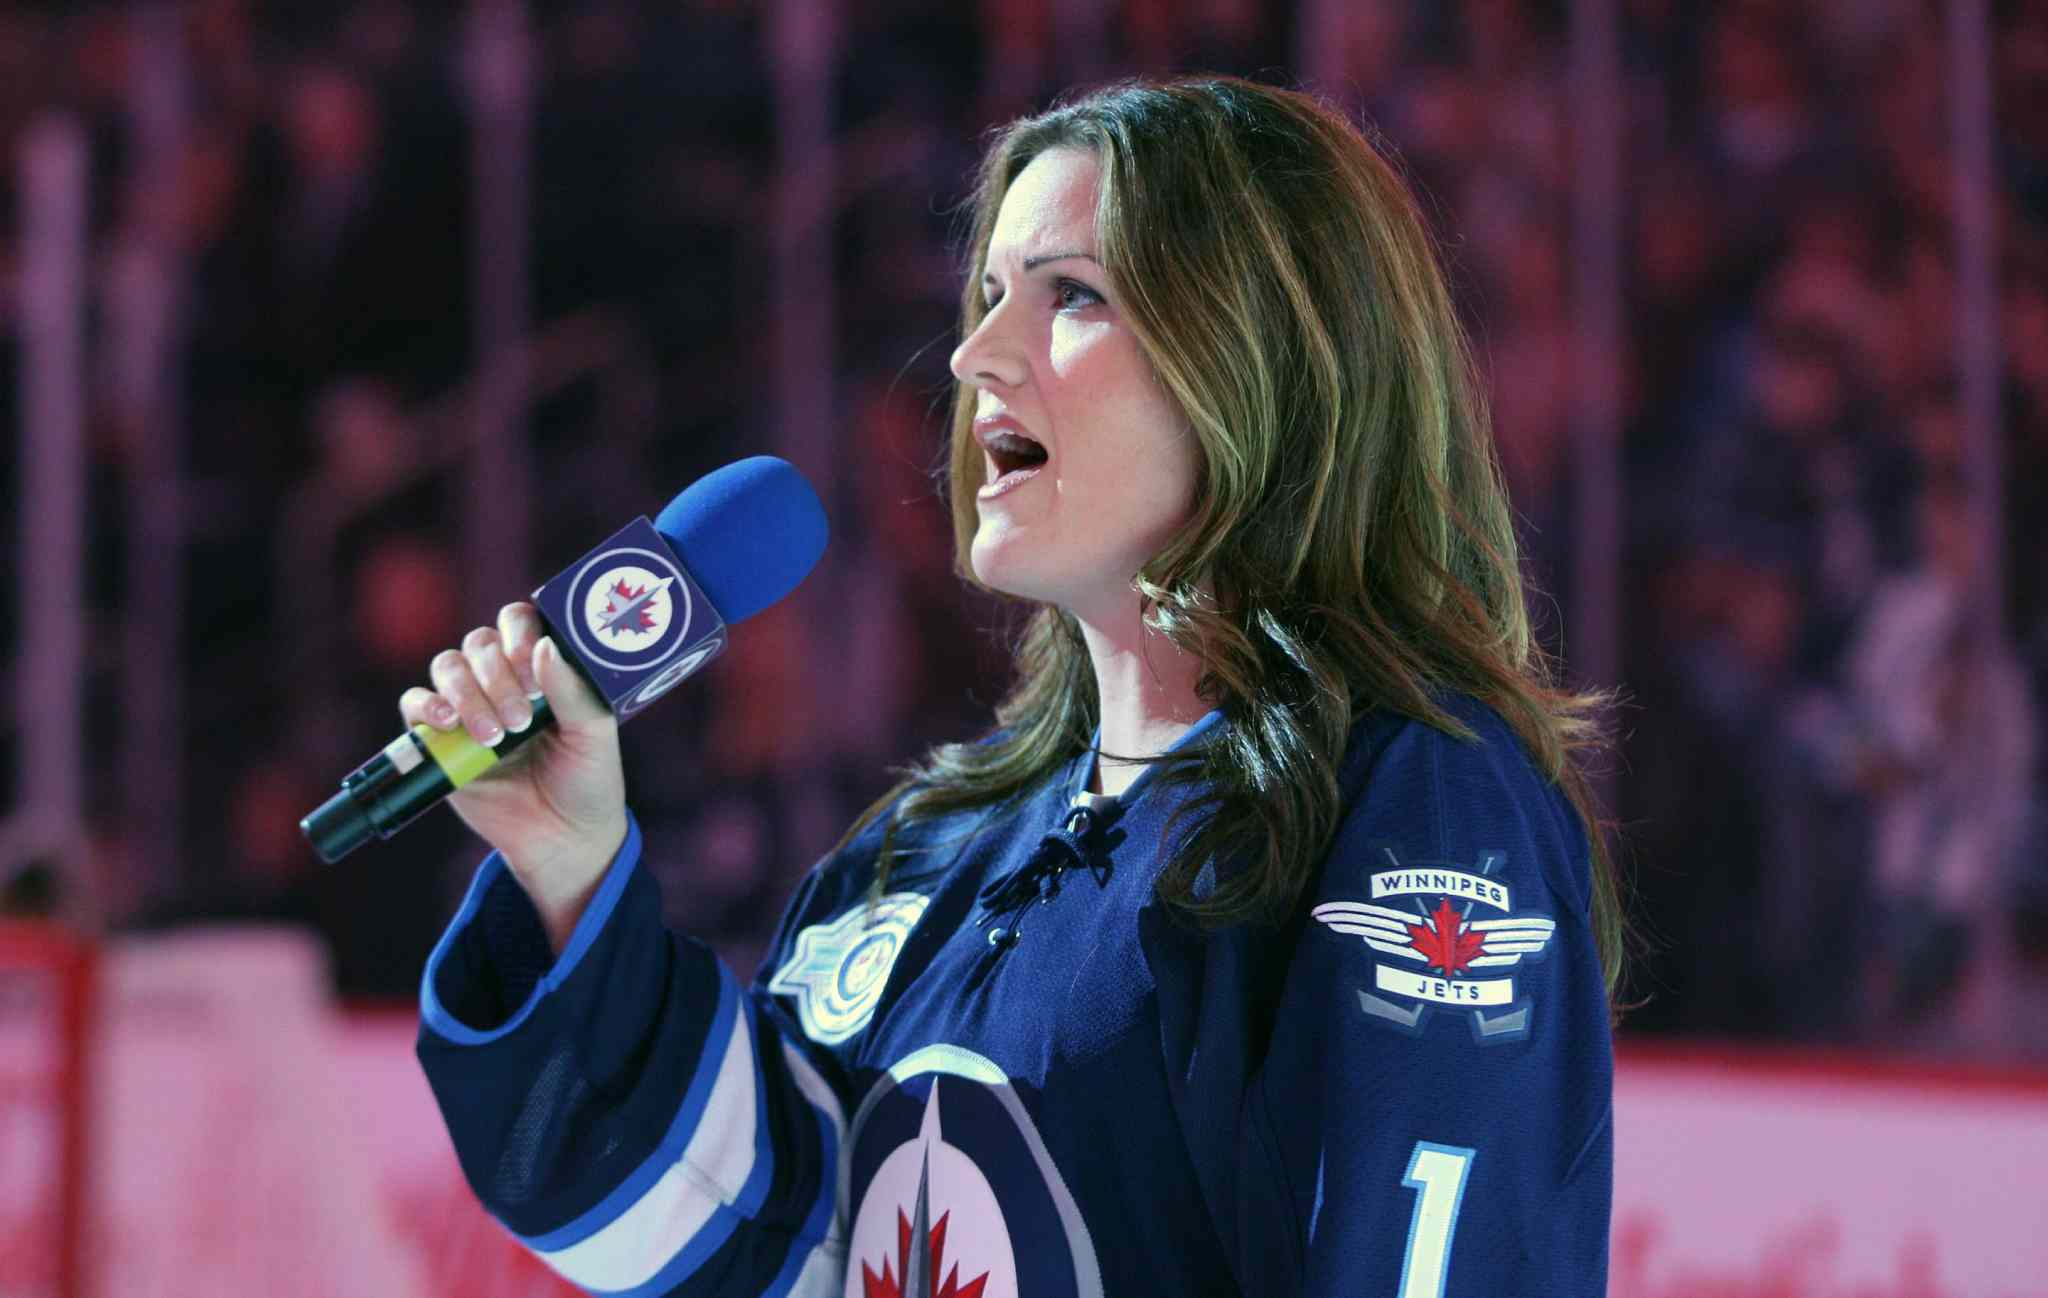 Wearing her personalized Jets home jersey, Stacey Nattrass belts out the national anthem before a pre-season NHL game at the MTS Centre earlier this year.